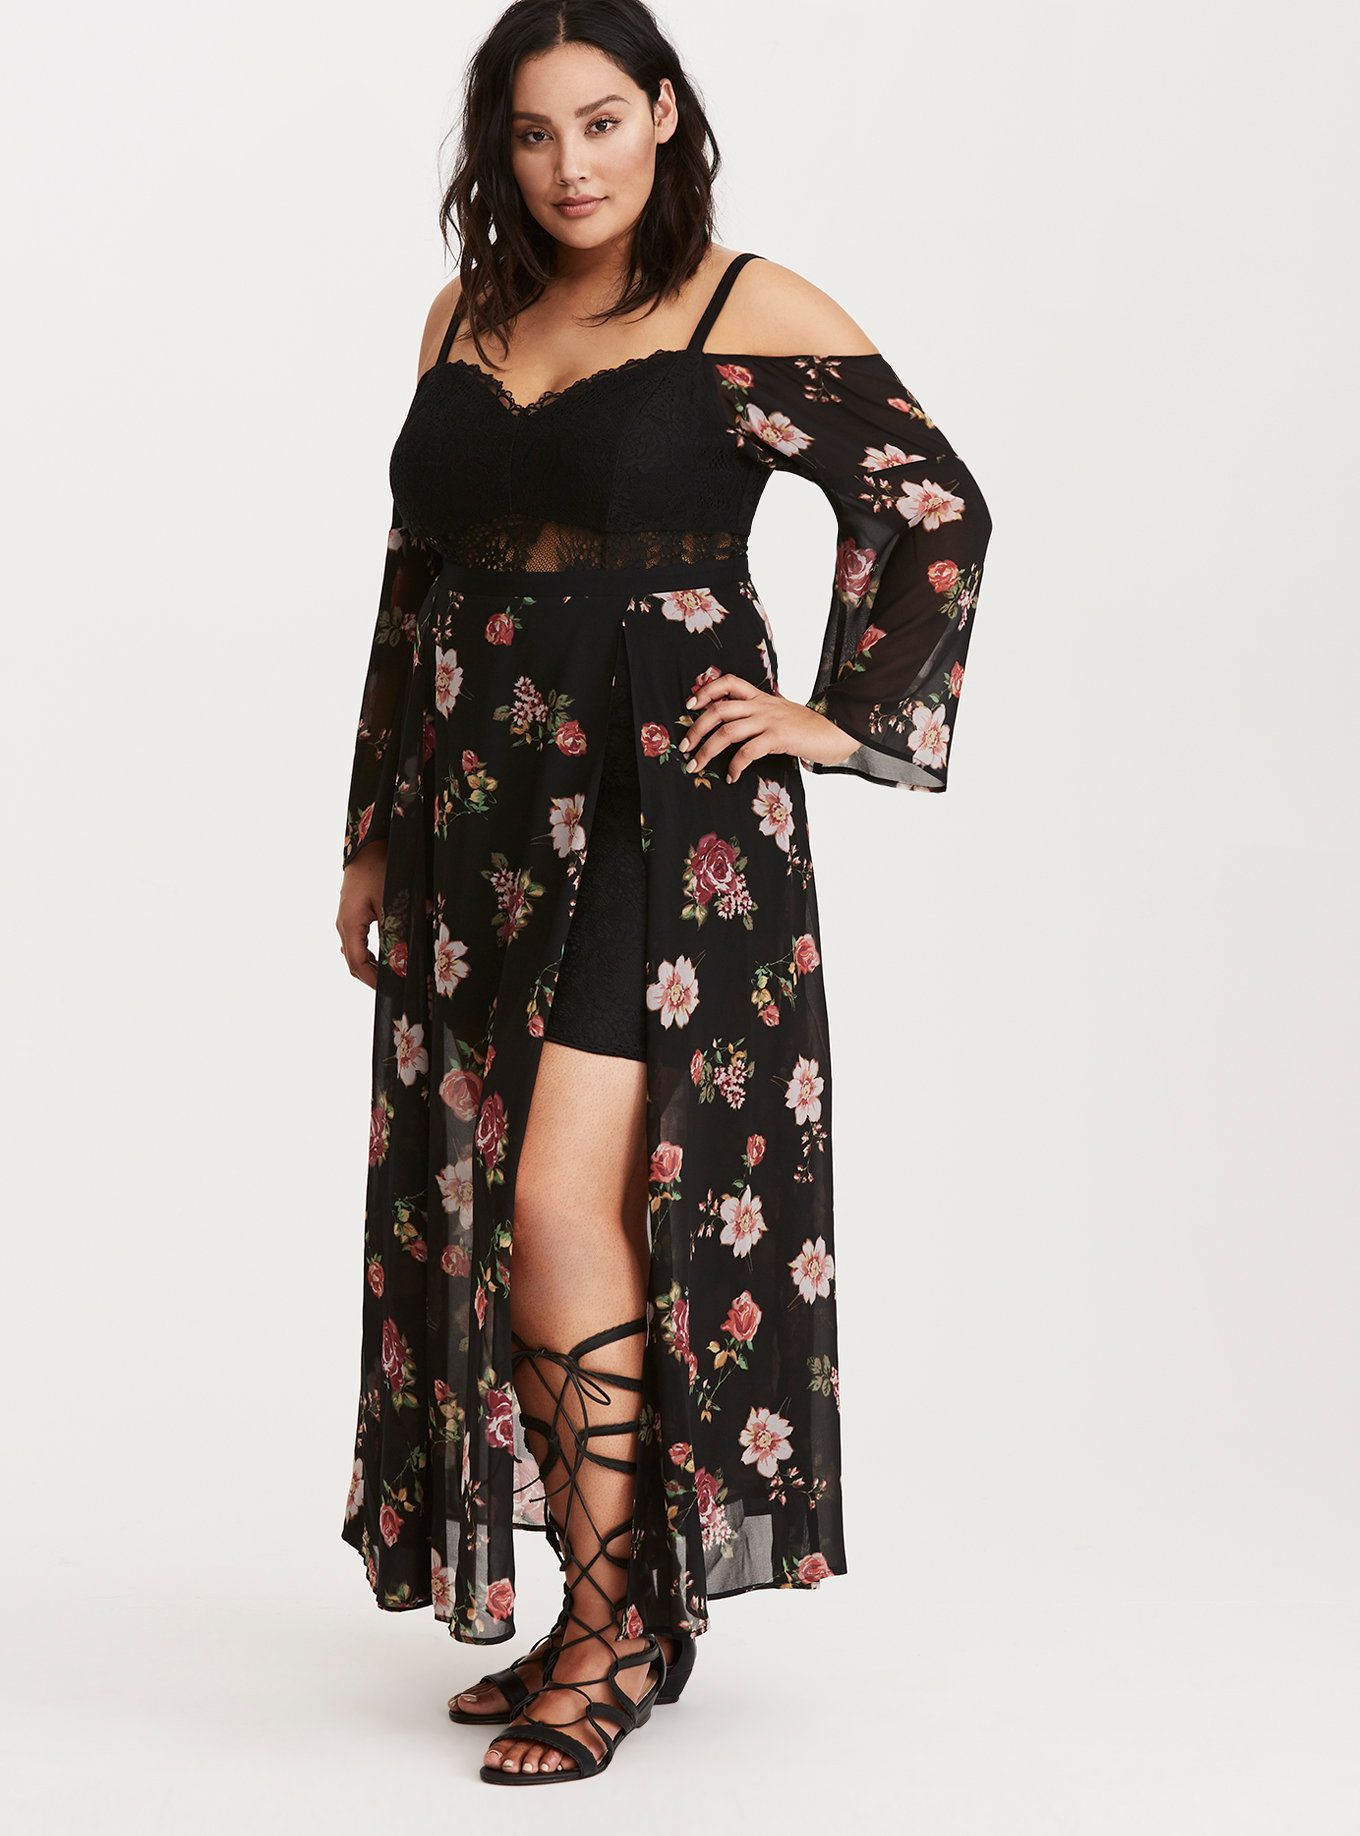 7a5e3347110 Torrid Insider Floral Print Cold Shoulder Lace Bustier Maxi Dress